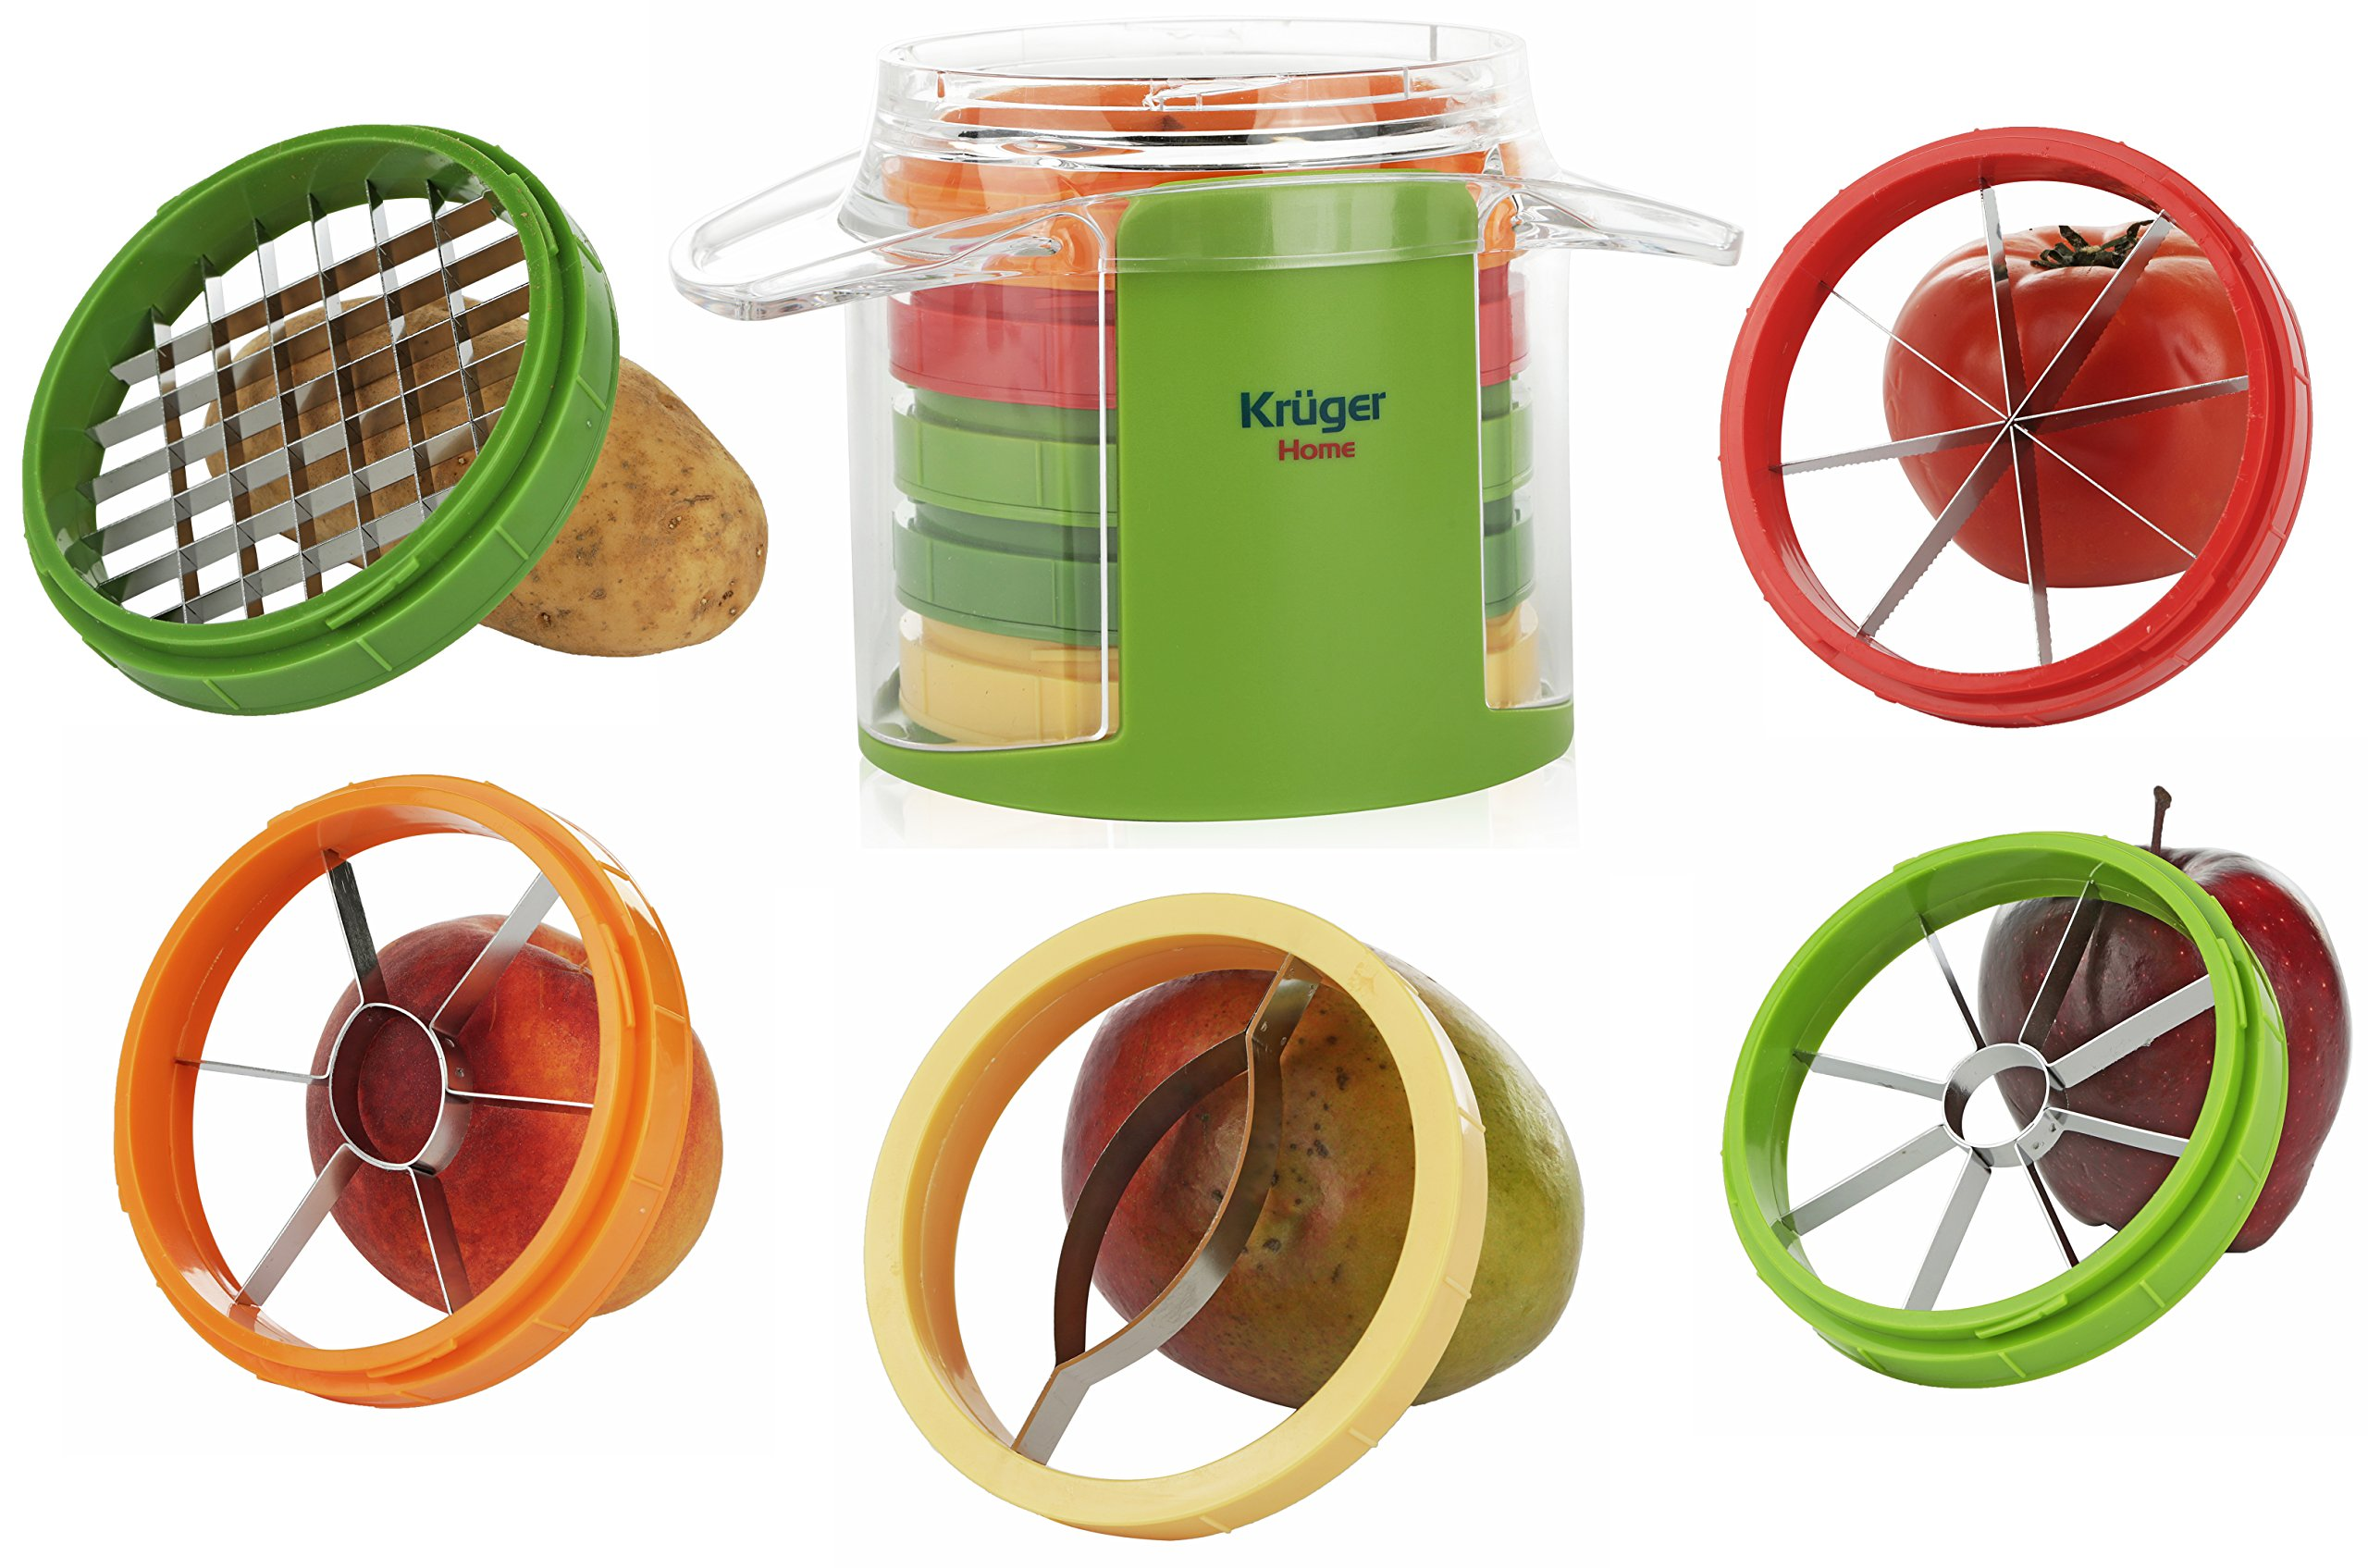 Kitchen Maestro Mango and Apple Slicer and Corer Slice and Pit your Fruits in One Easy Movement.